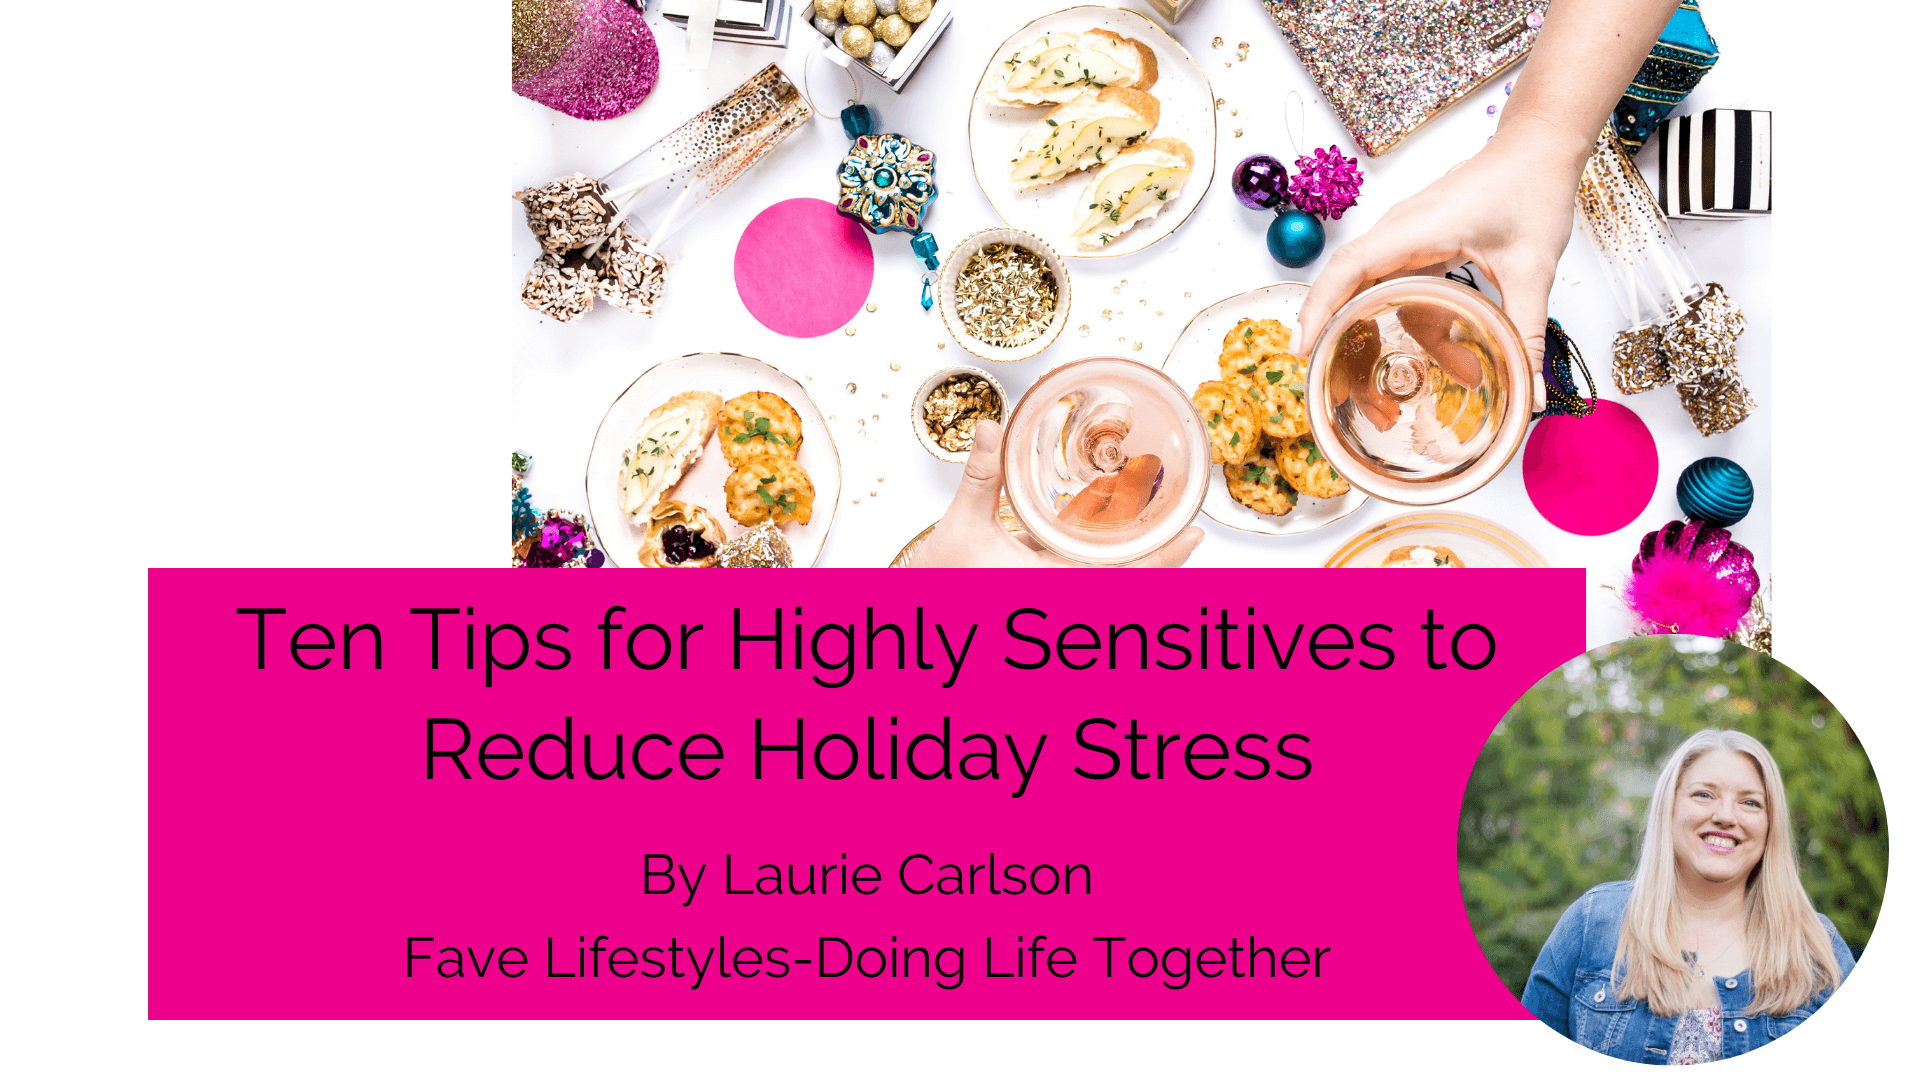 Ten Tips for Highly Sensitives to Reduce Holiday Stress